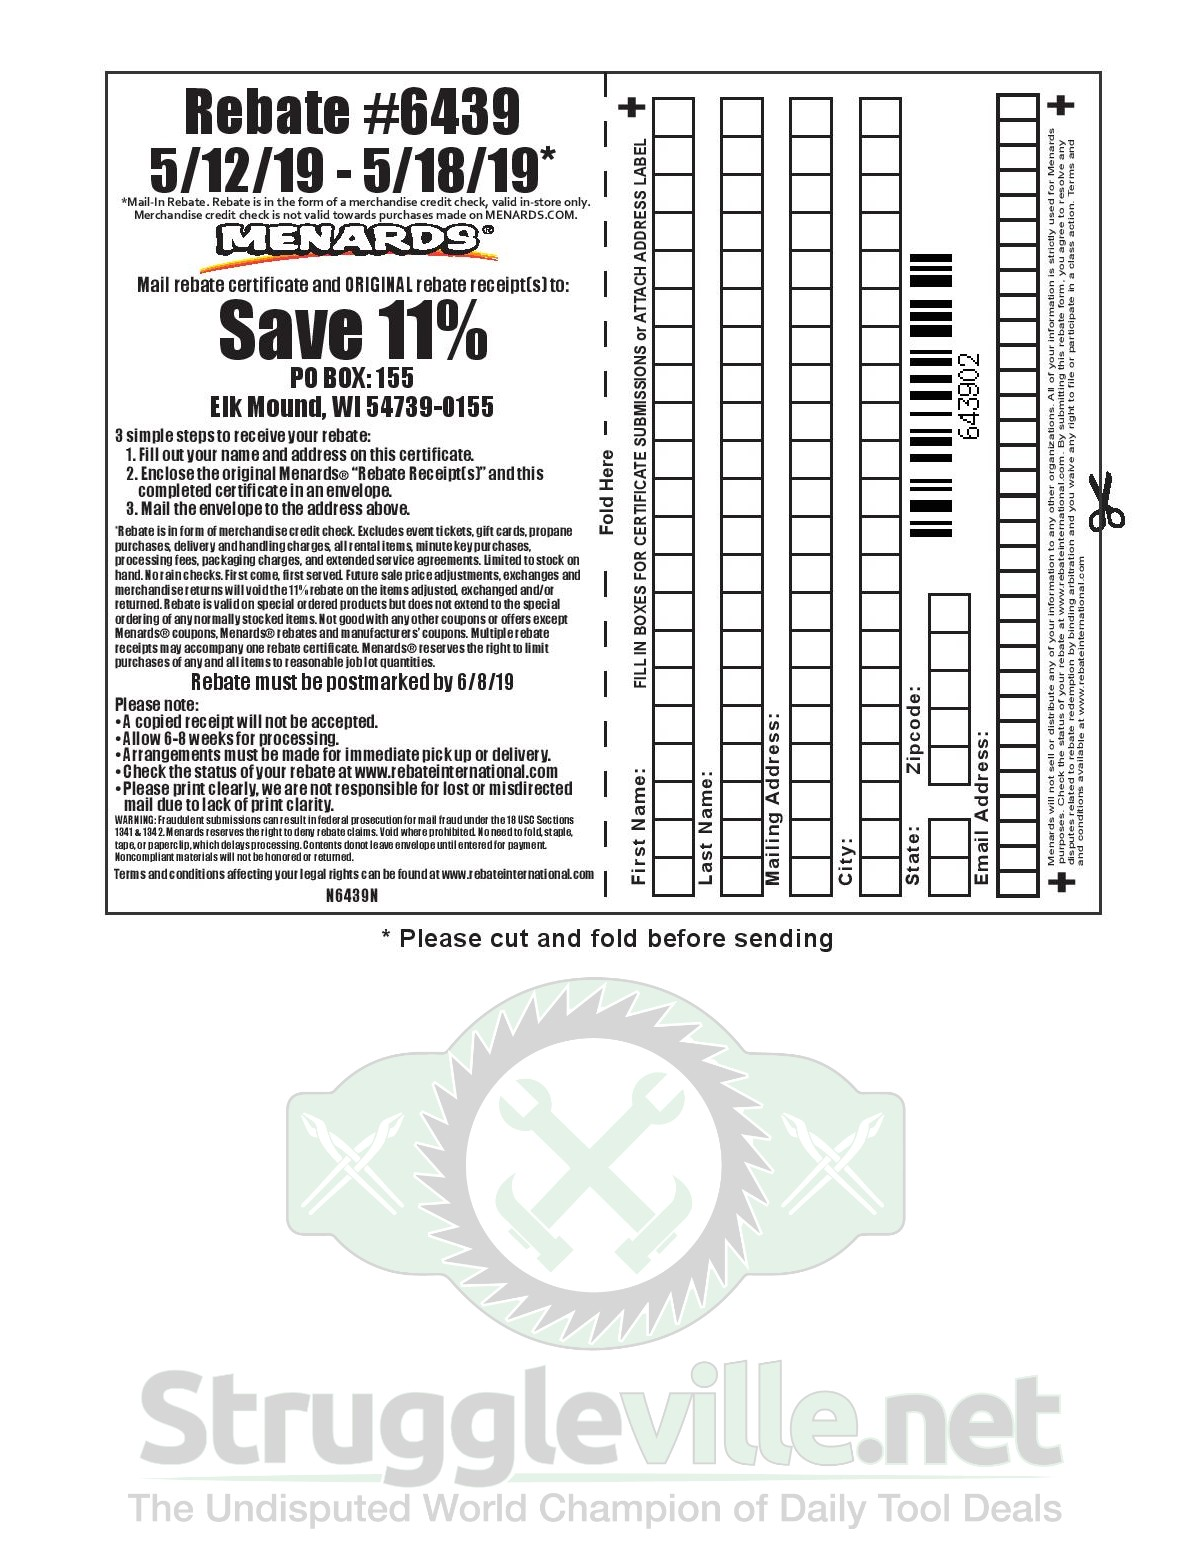 graphic relating to Menard Printable Coupons referred to as Menards 11% Rebate #6439 Buys 5/12/19 5/18/19